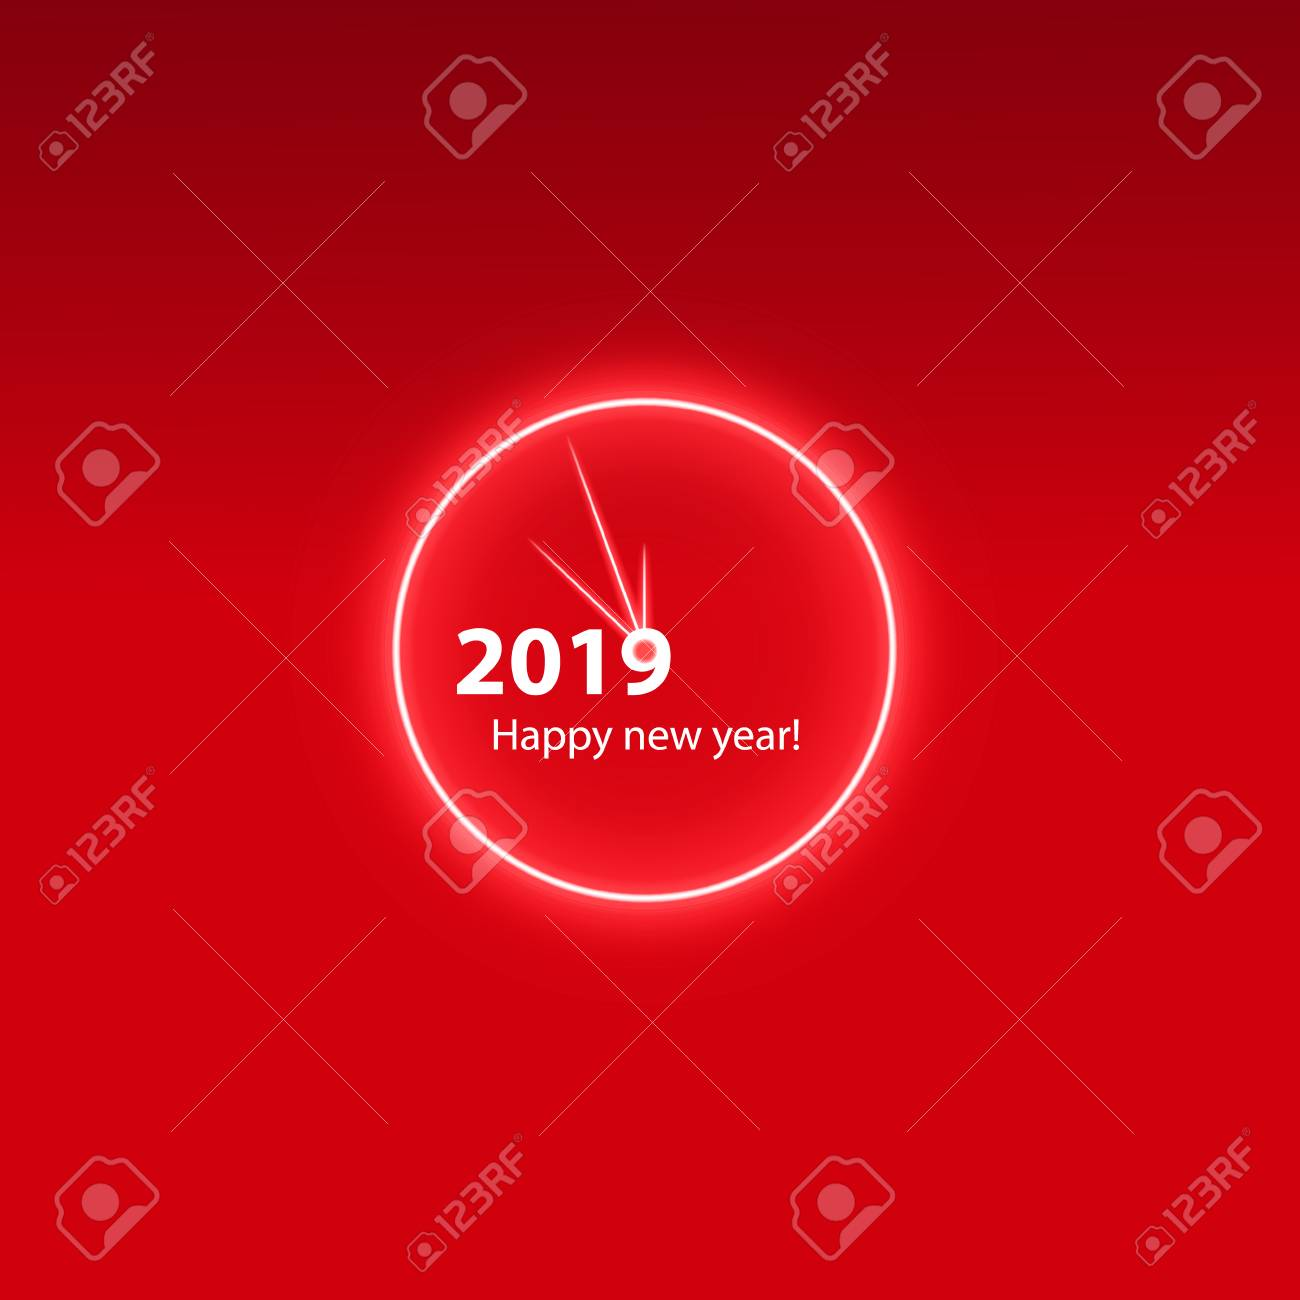 christmas party poster with a glowing magical clock happy 2019 new year flyer greeting